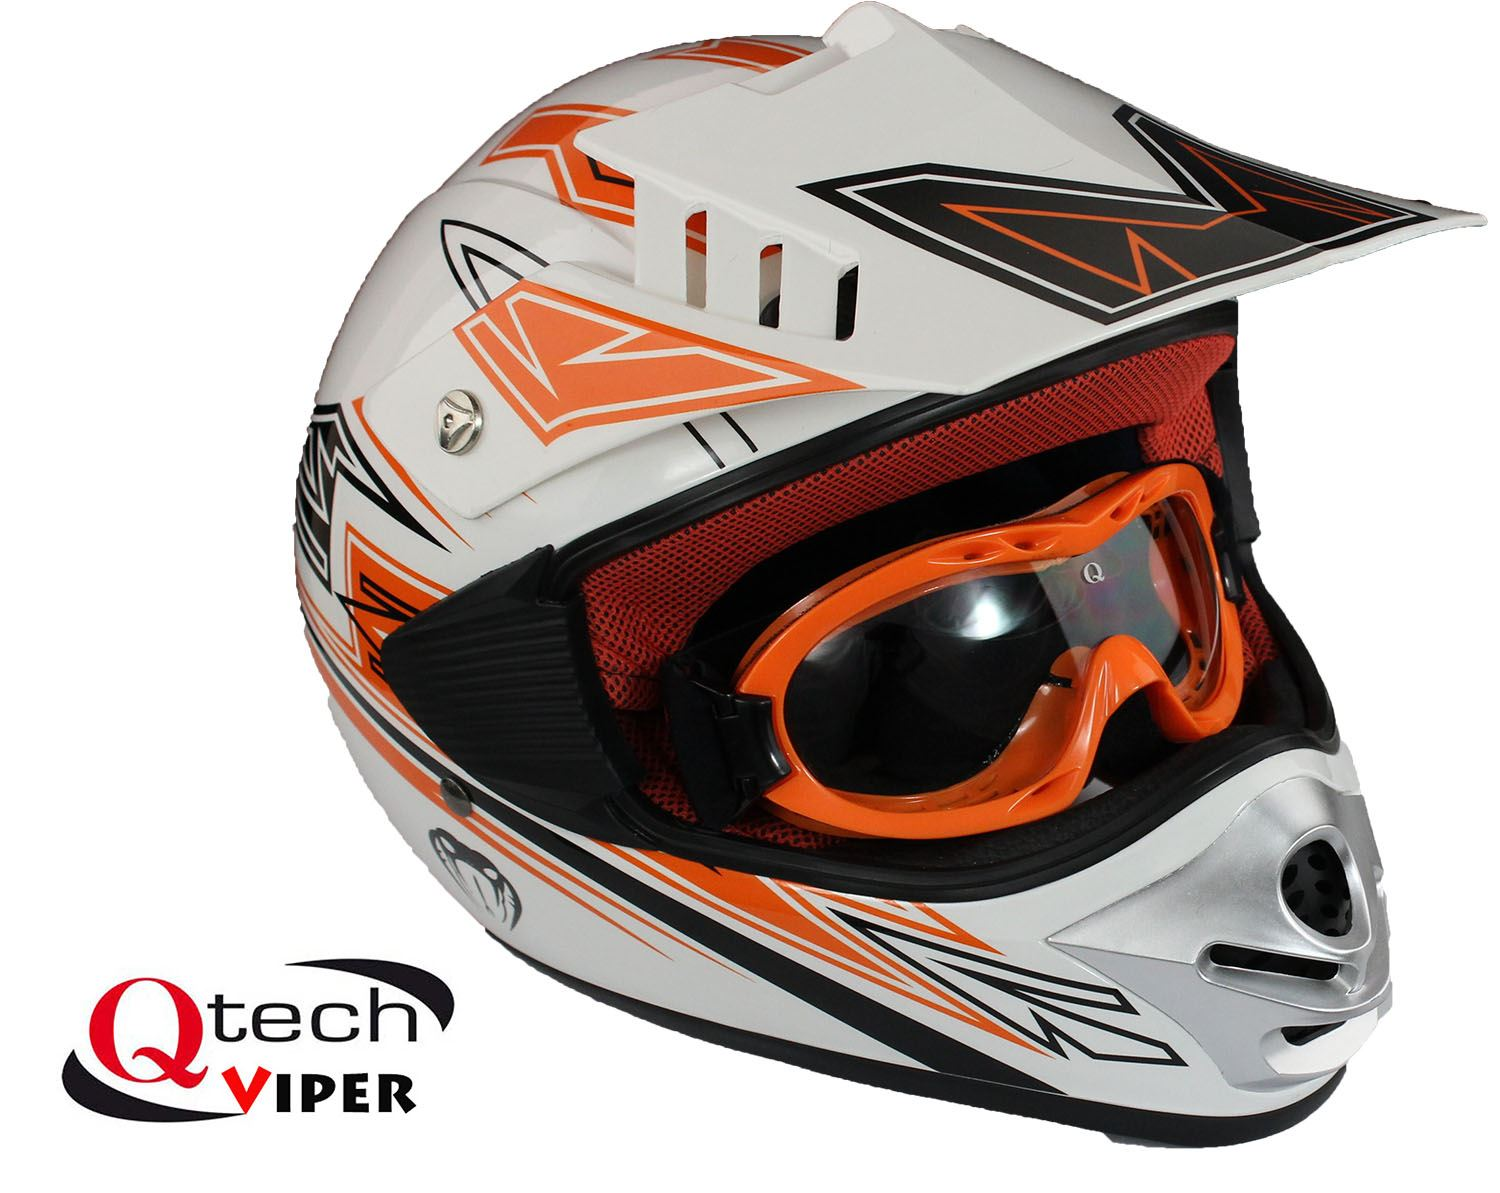 kinder motocross helm mit brille offroad dirt bike ebay